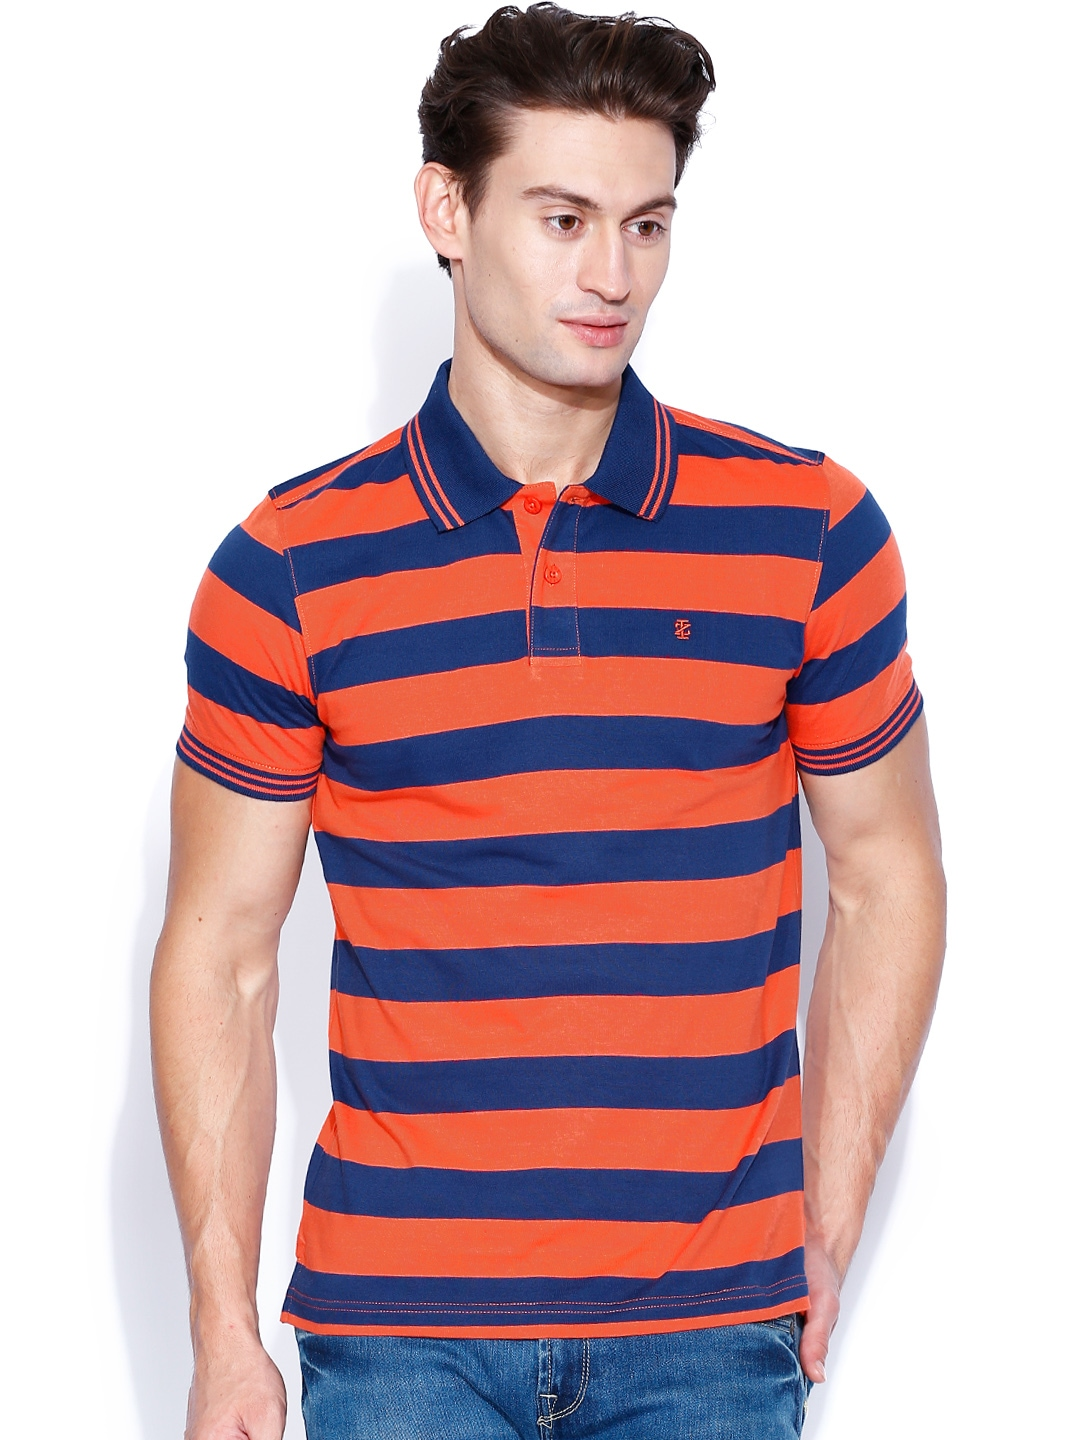 Find great deals on eBay for blue and orange polo shirt. Shop with confidence.